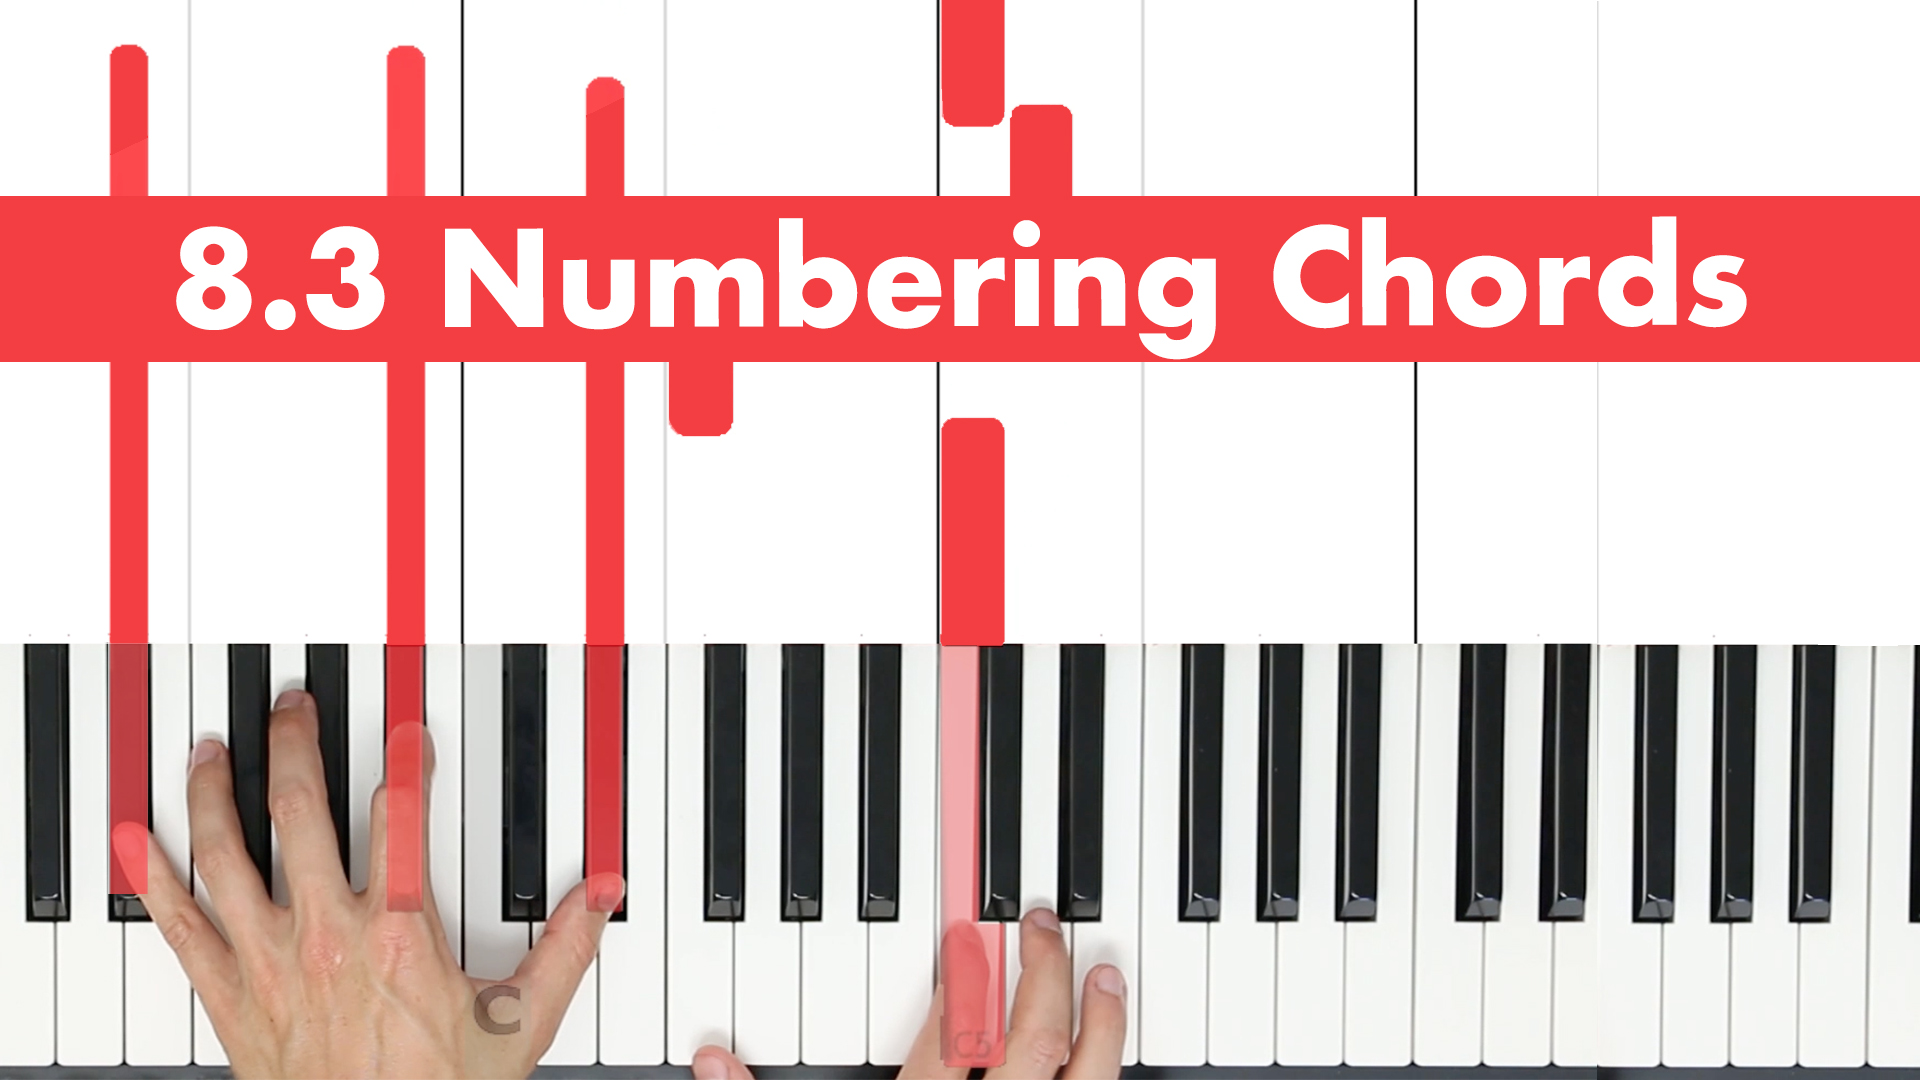 8.3 Numbering Chords